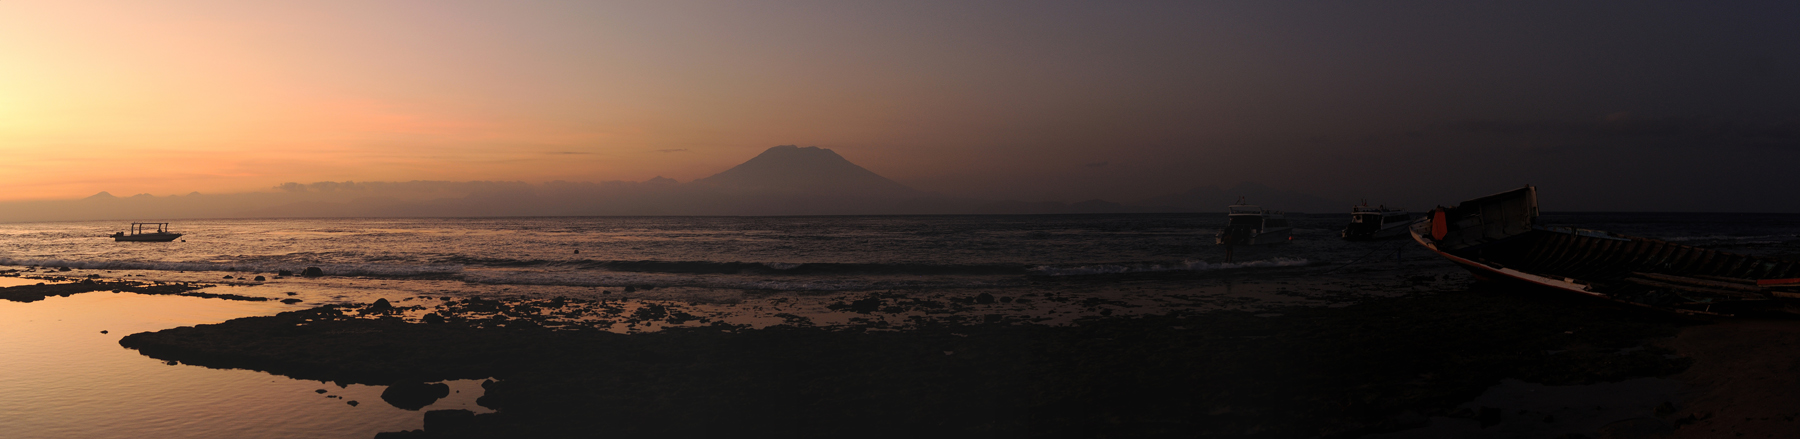 Sunset on Nusa Penida with Mount Agung across the sea